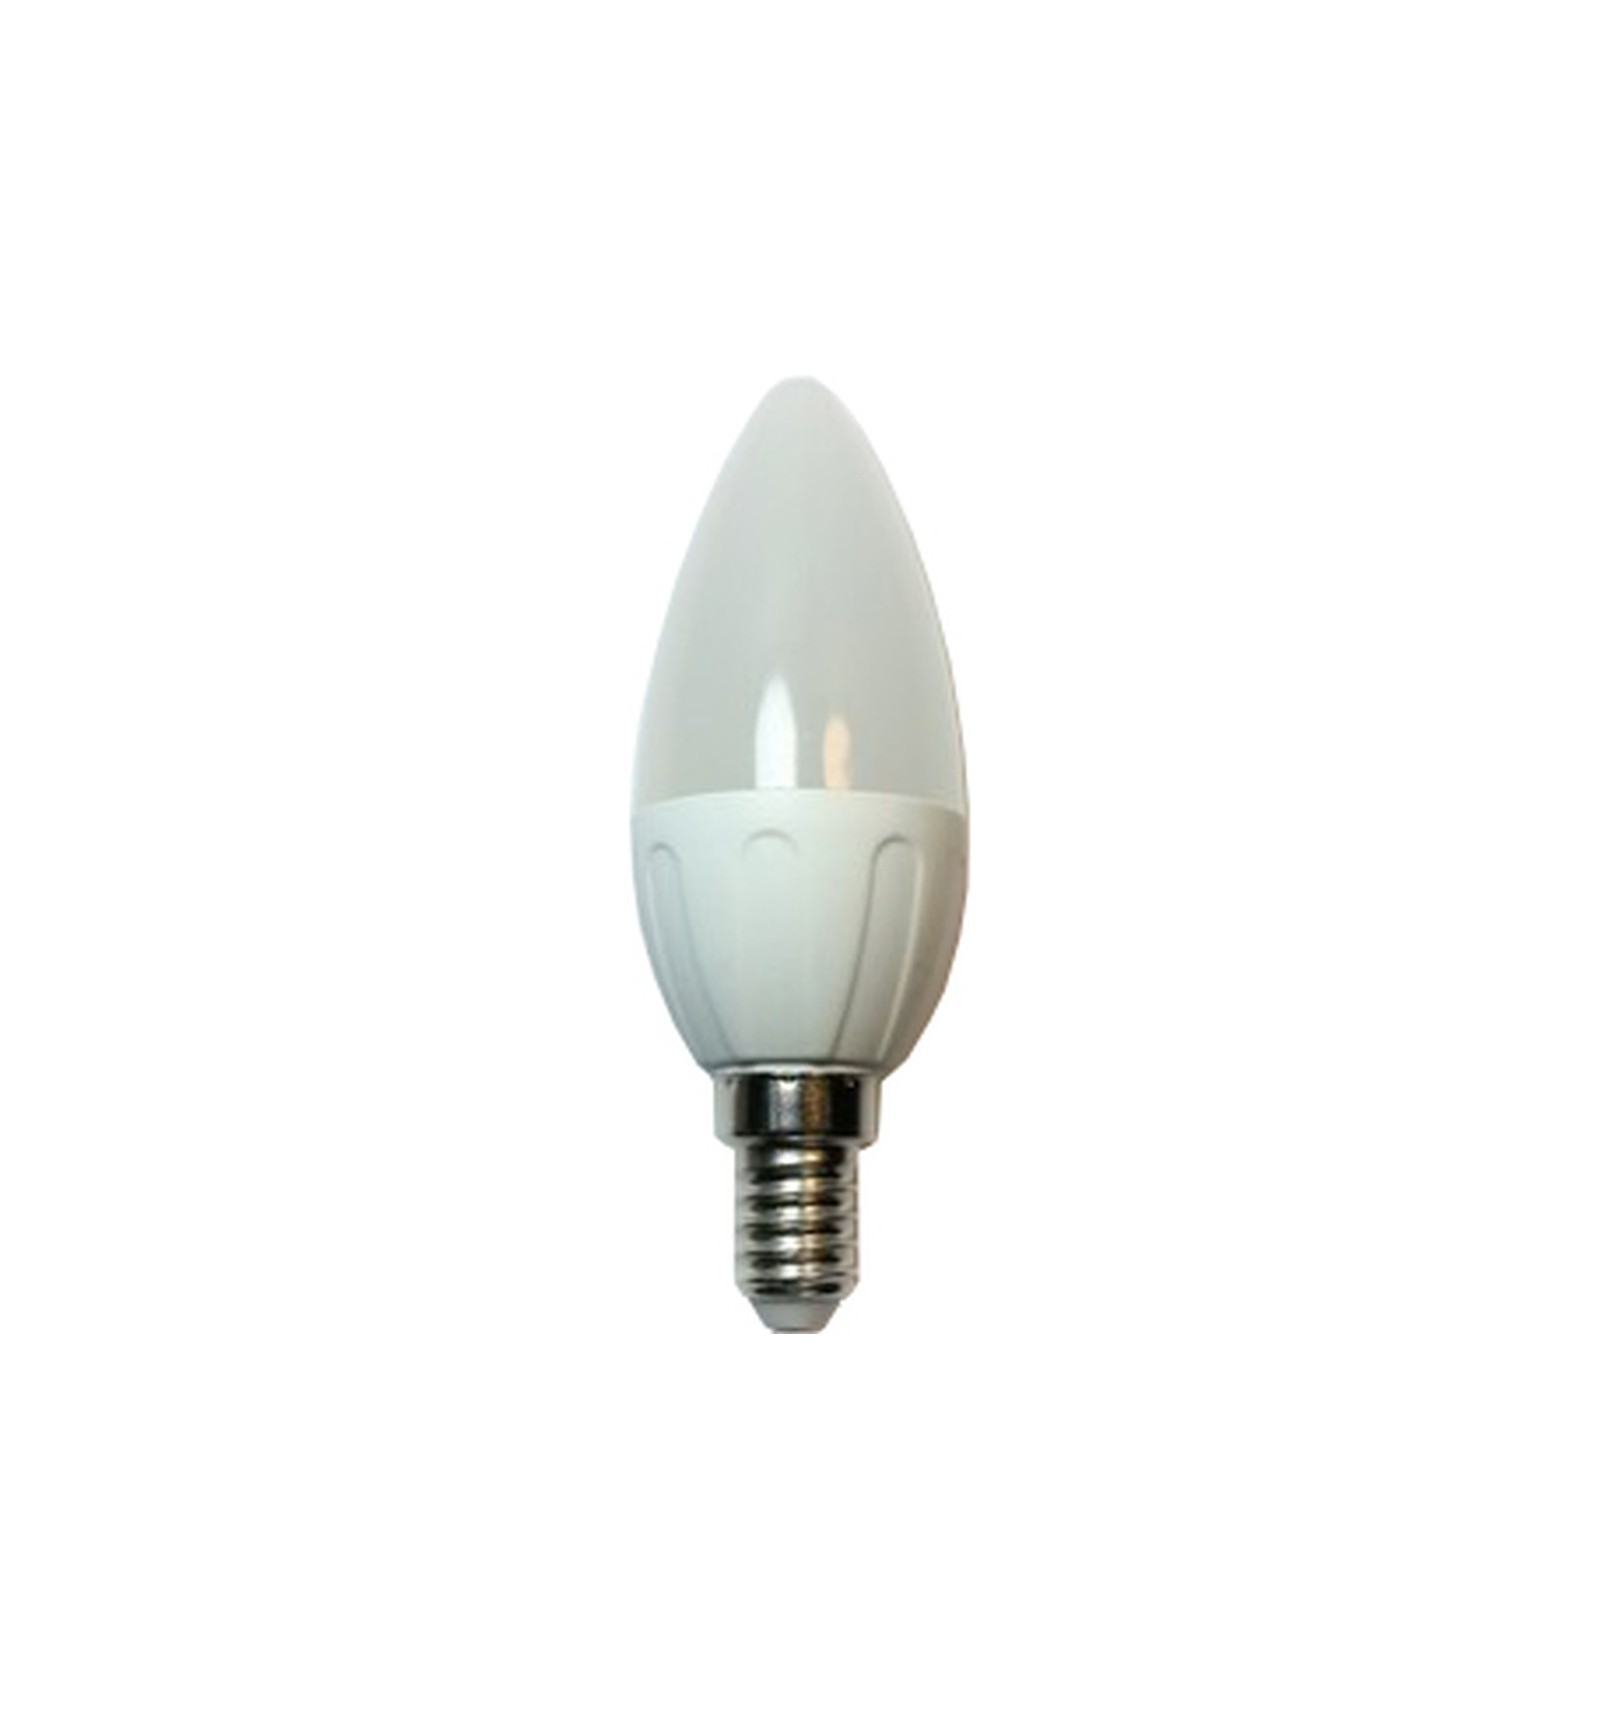 led-candle-lamp-e14-5w-400lm-warm Faszinierend E14 Led 400 Lumen Dekorationen